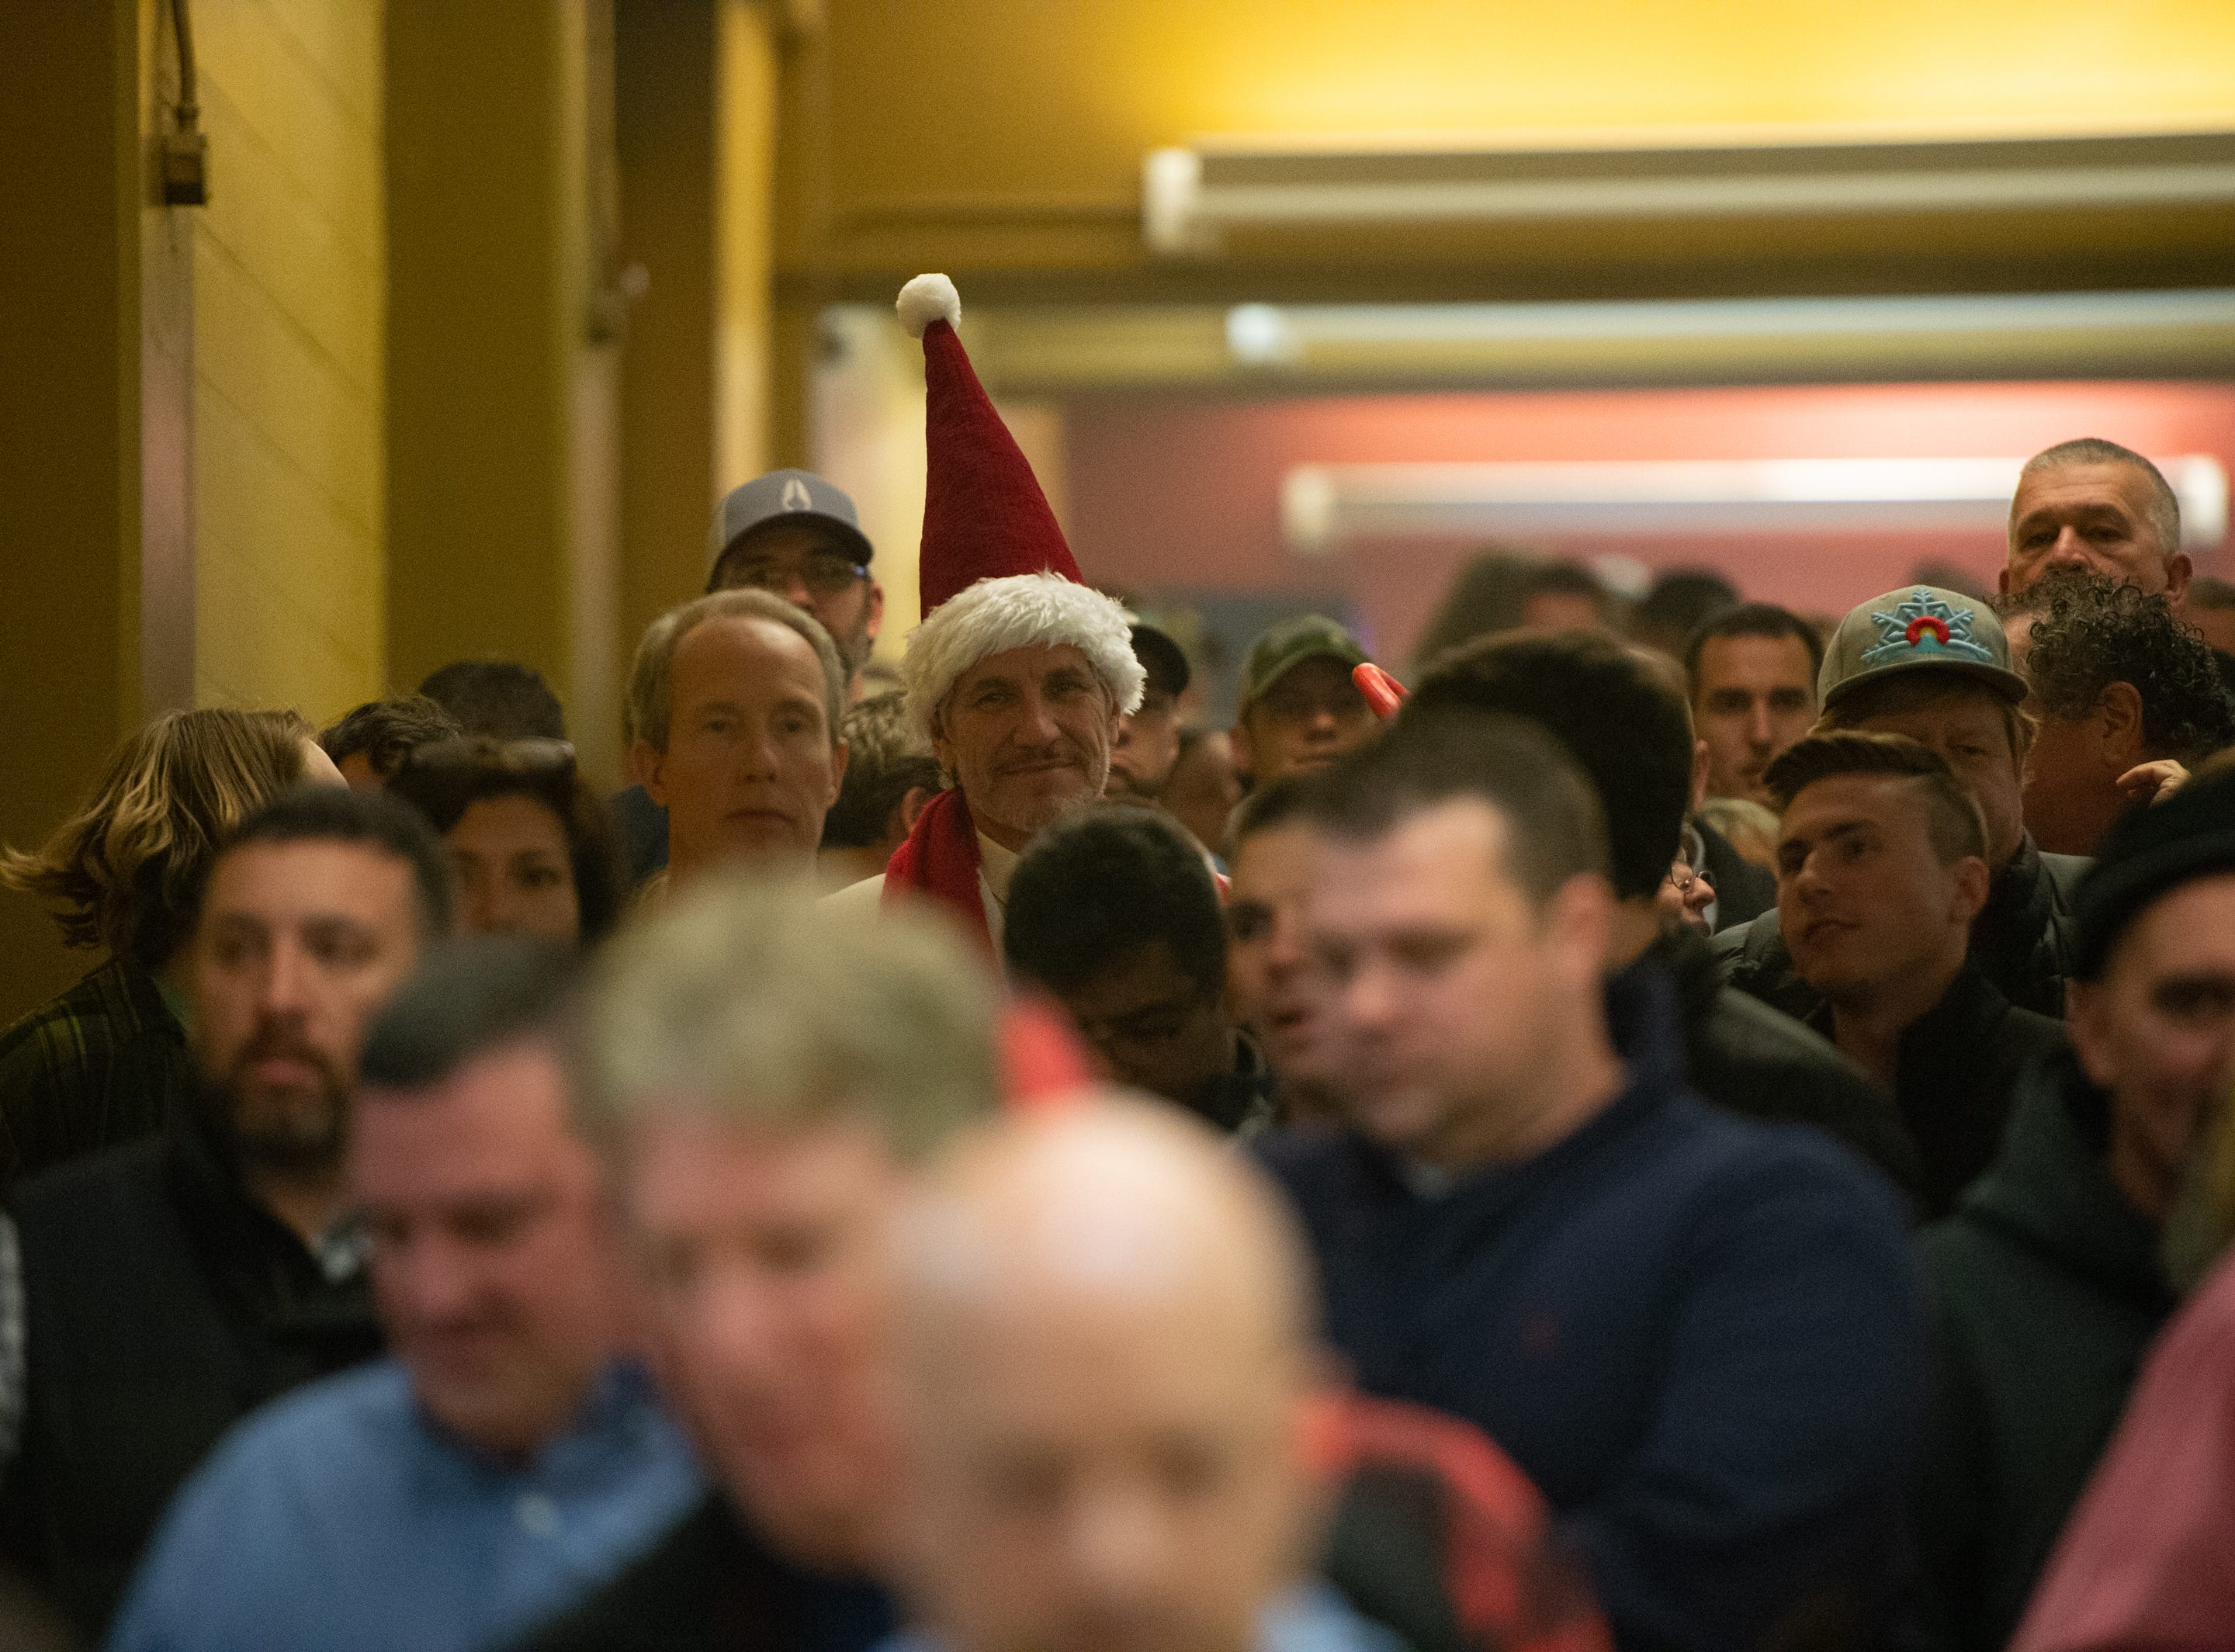 V.I.P attendees of the first night of the 30th annual Christmas Jam at the U.S Cellular Center in Asheville line up to enter Dec. 7, 2018.